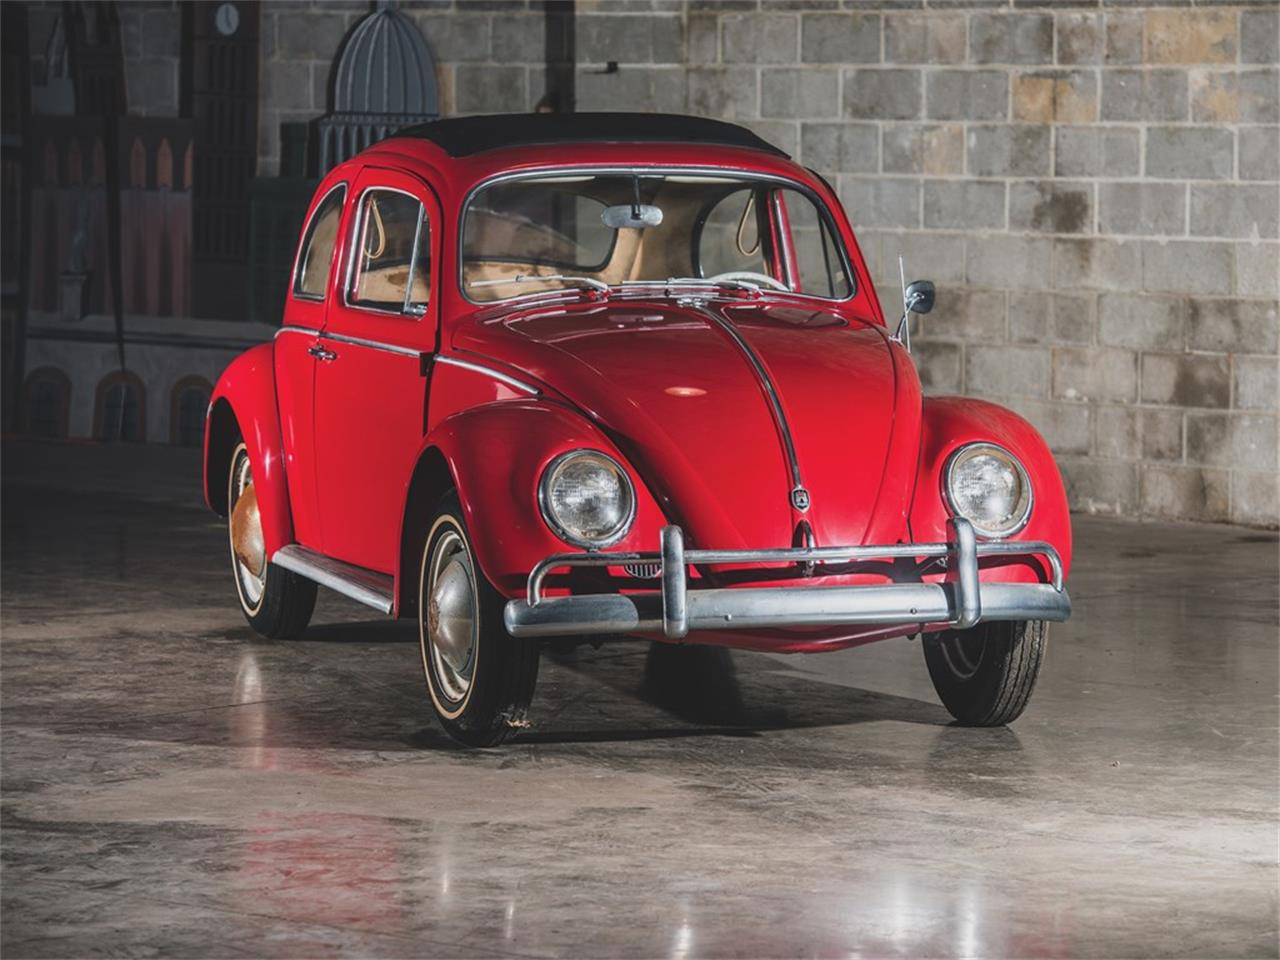 Large Picture of 1962 Beetle Deluxe 'Sunroof' Sedan Auction Vehicle Offered by RM Sotheby's - PMN5